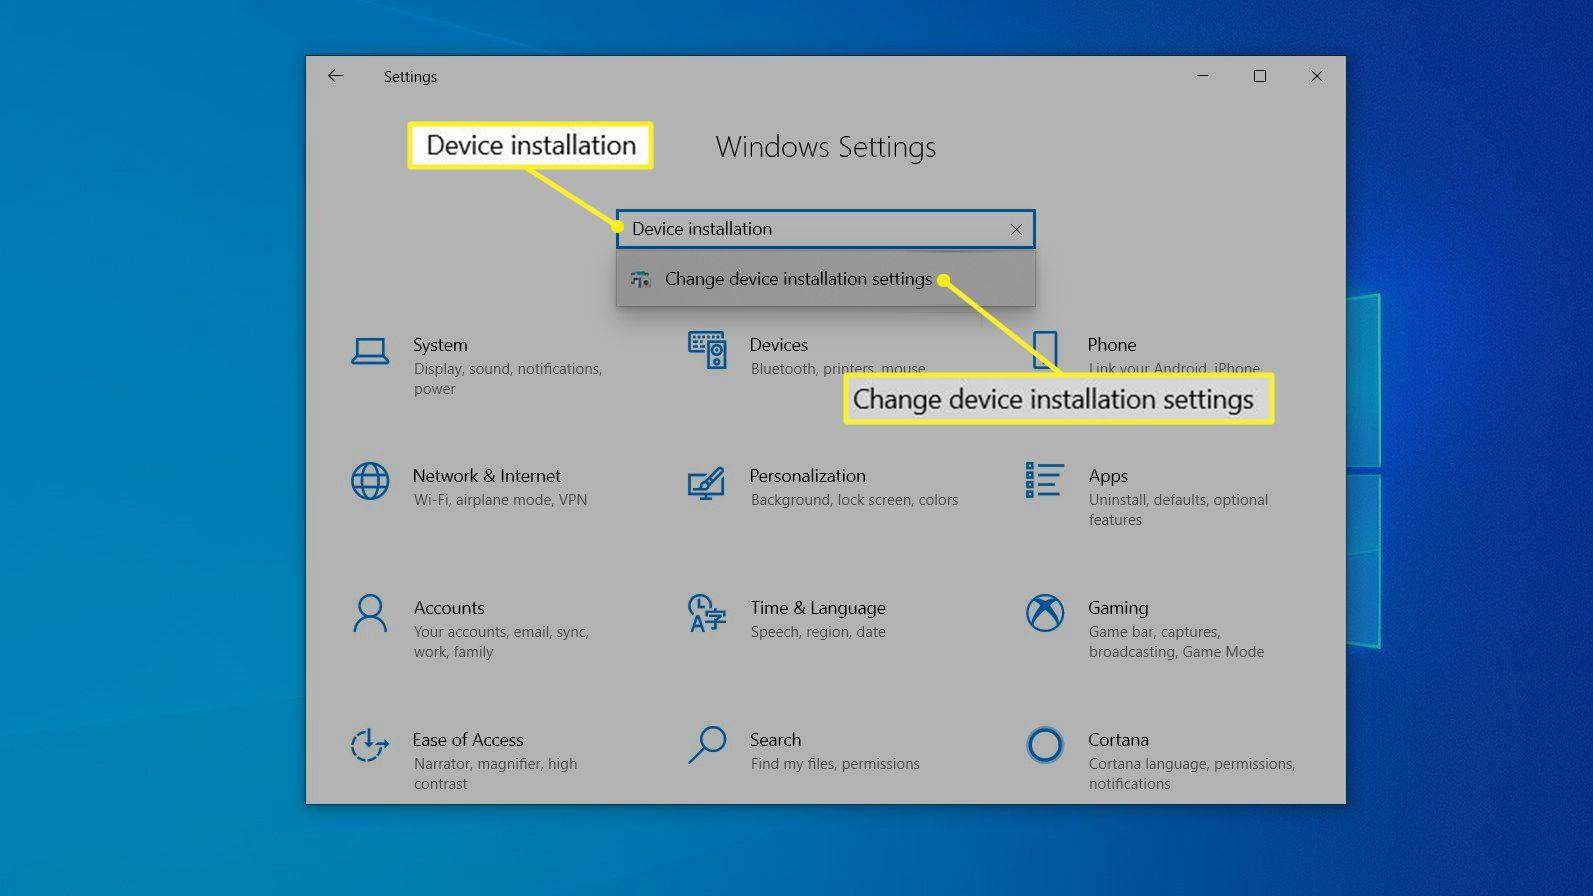 The Windows Settings dialog box with Change device installation settings highlighted